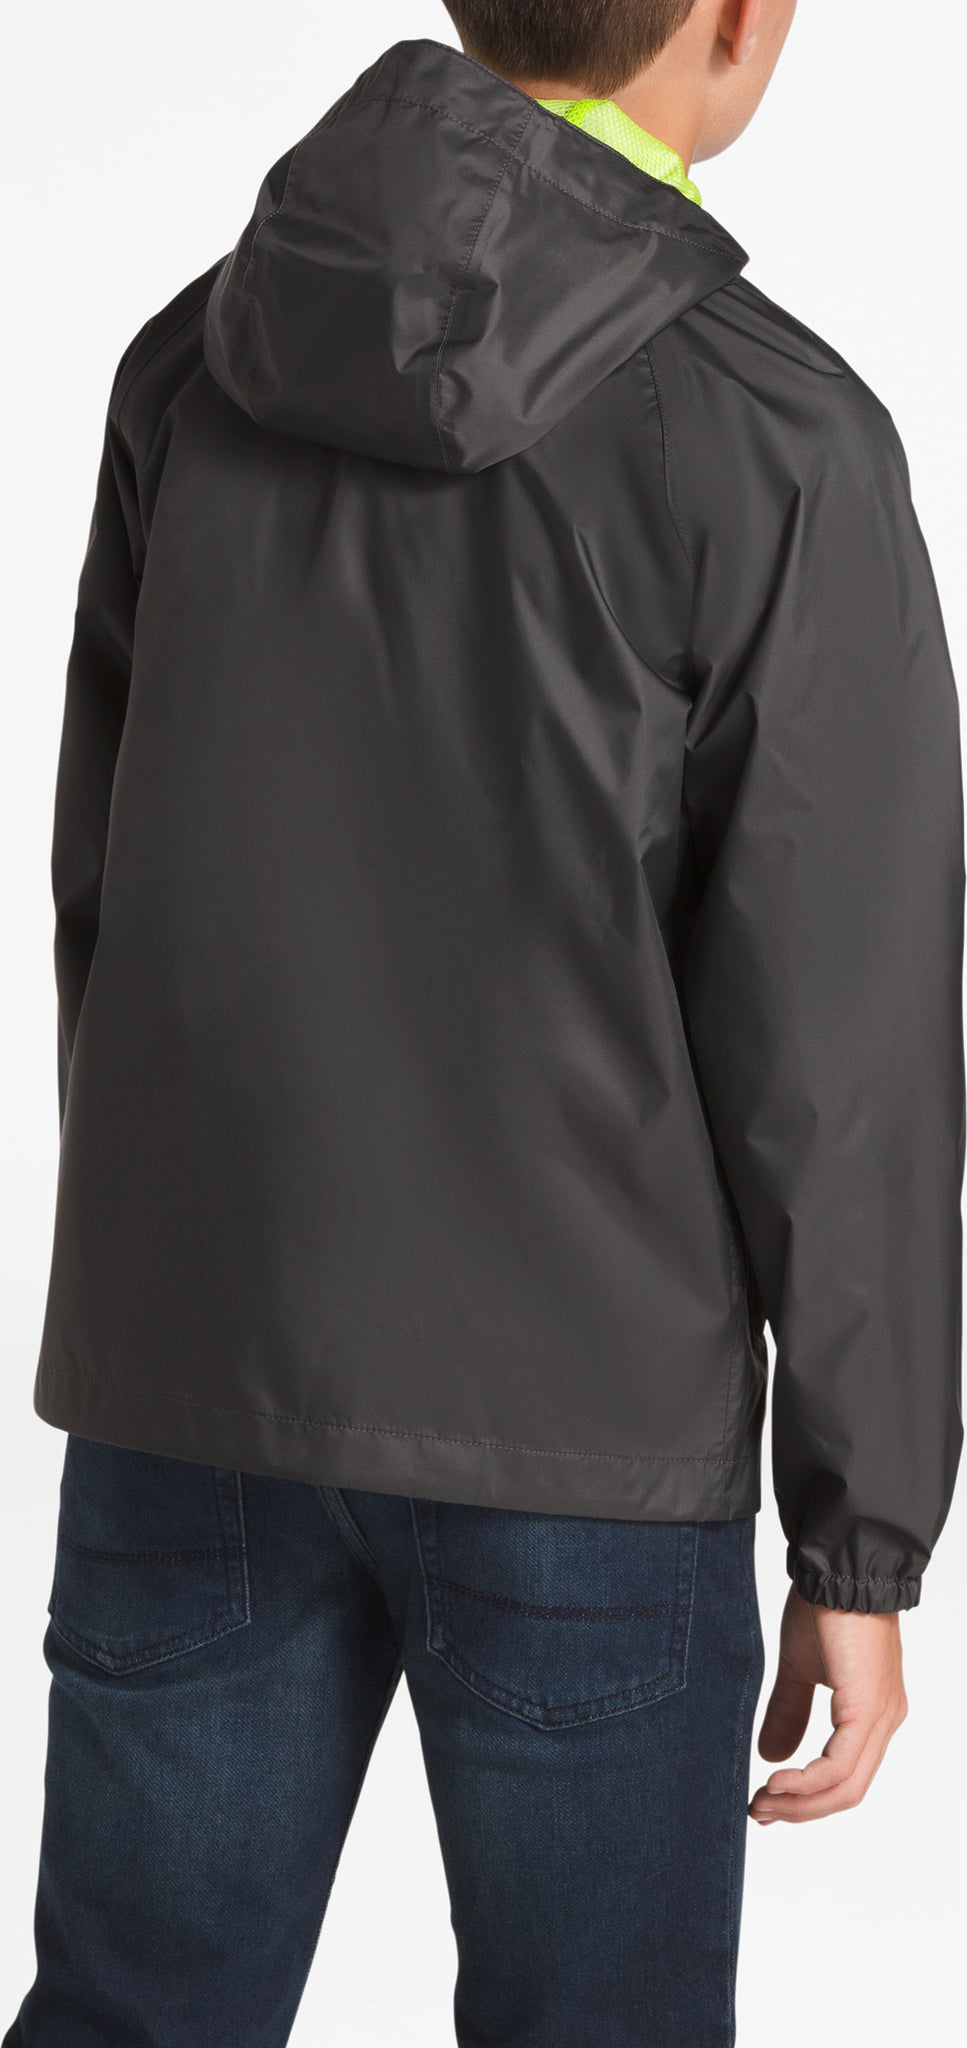 0115d09e6fb4 The North Face Zipline Rain Jacket - Boys